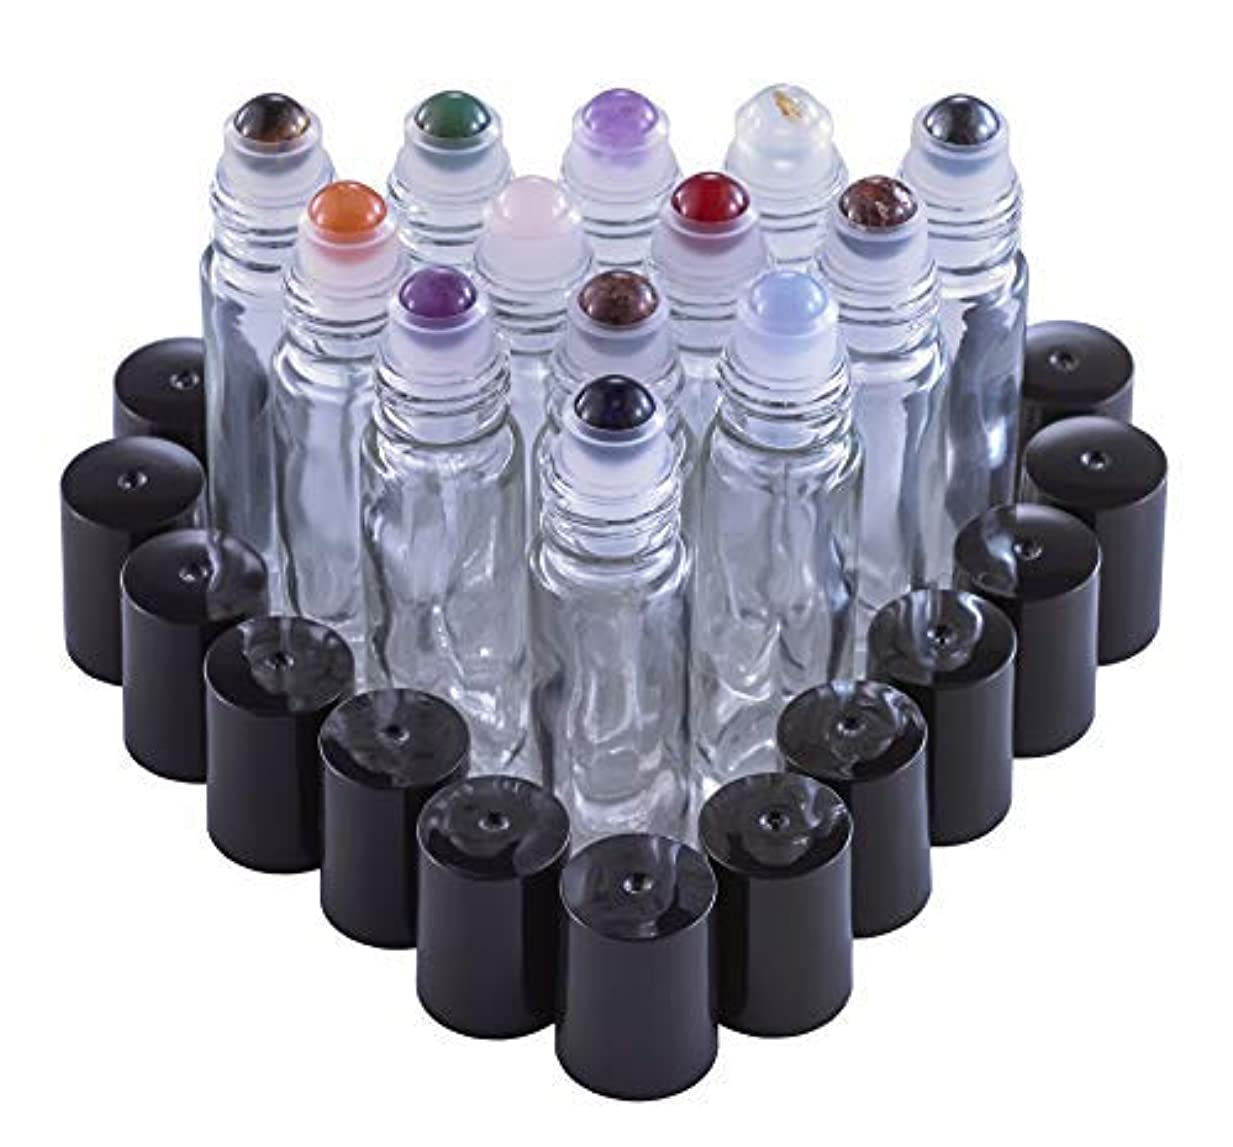 クマノミ葉を集めるエジプトGemstone Roller Balls For Essential Oils - 13 Beautiful Glass Roller Bottles With Precious Gemstones and Crystals Tops - For Blending Including Tiger Eye, Rose Quartz, Amethyst [並行輸入品]